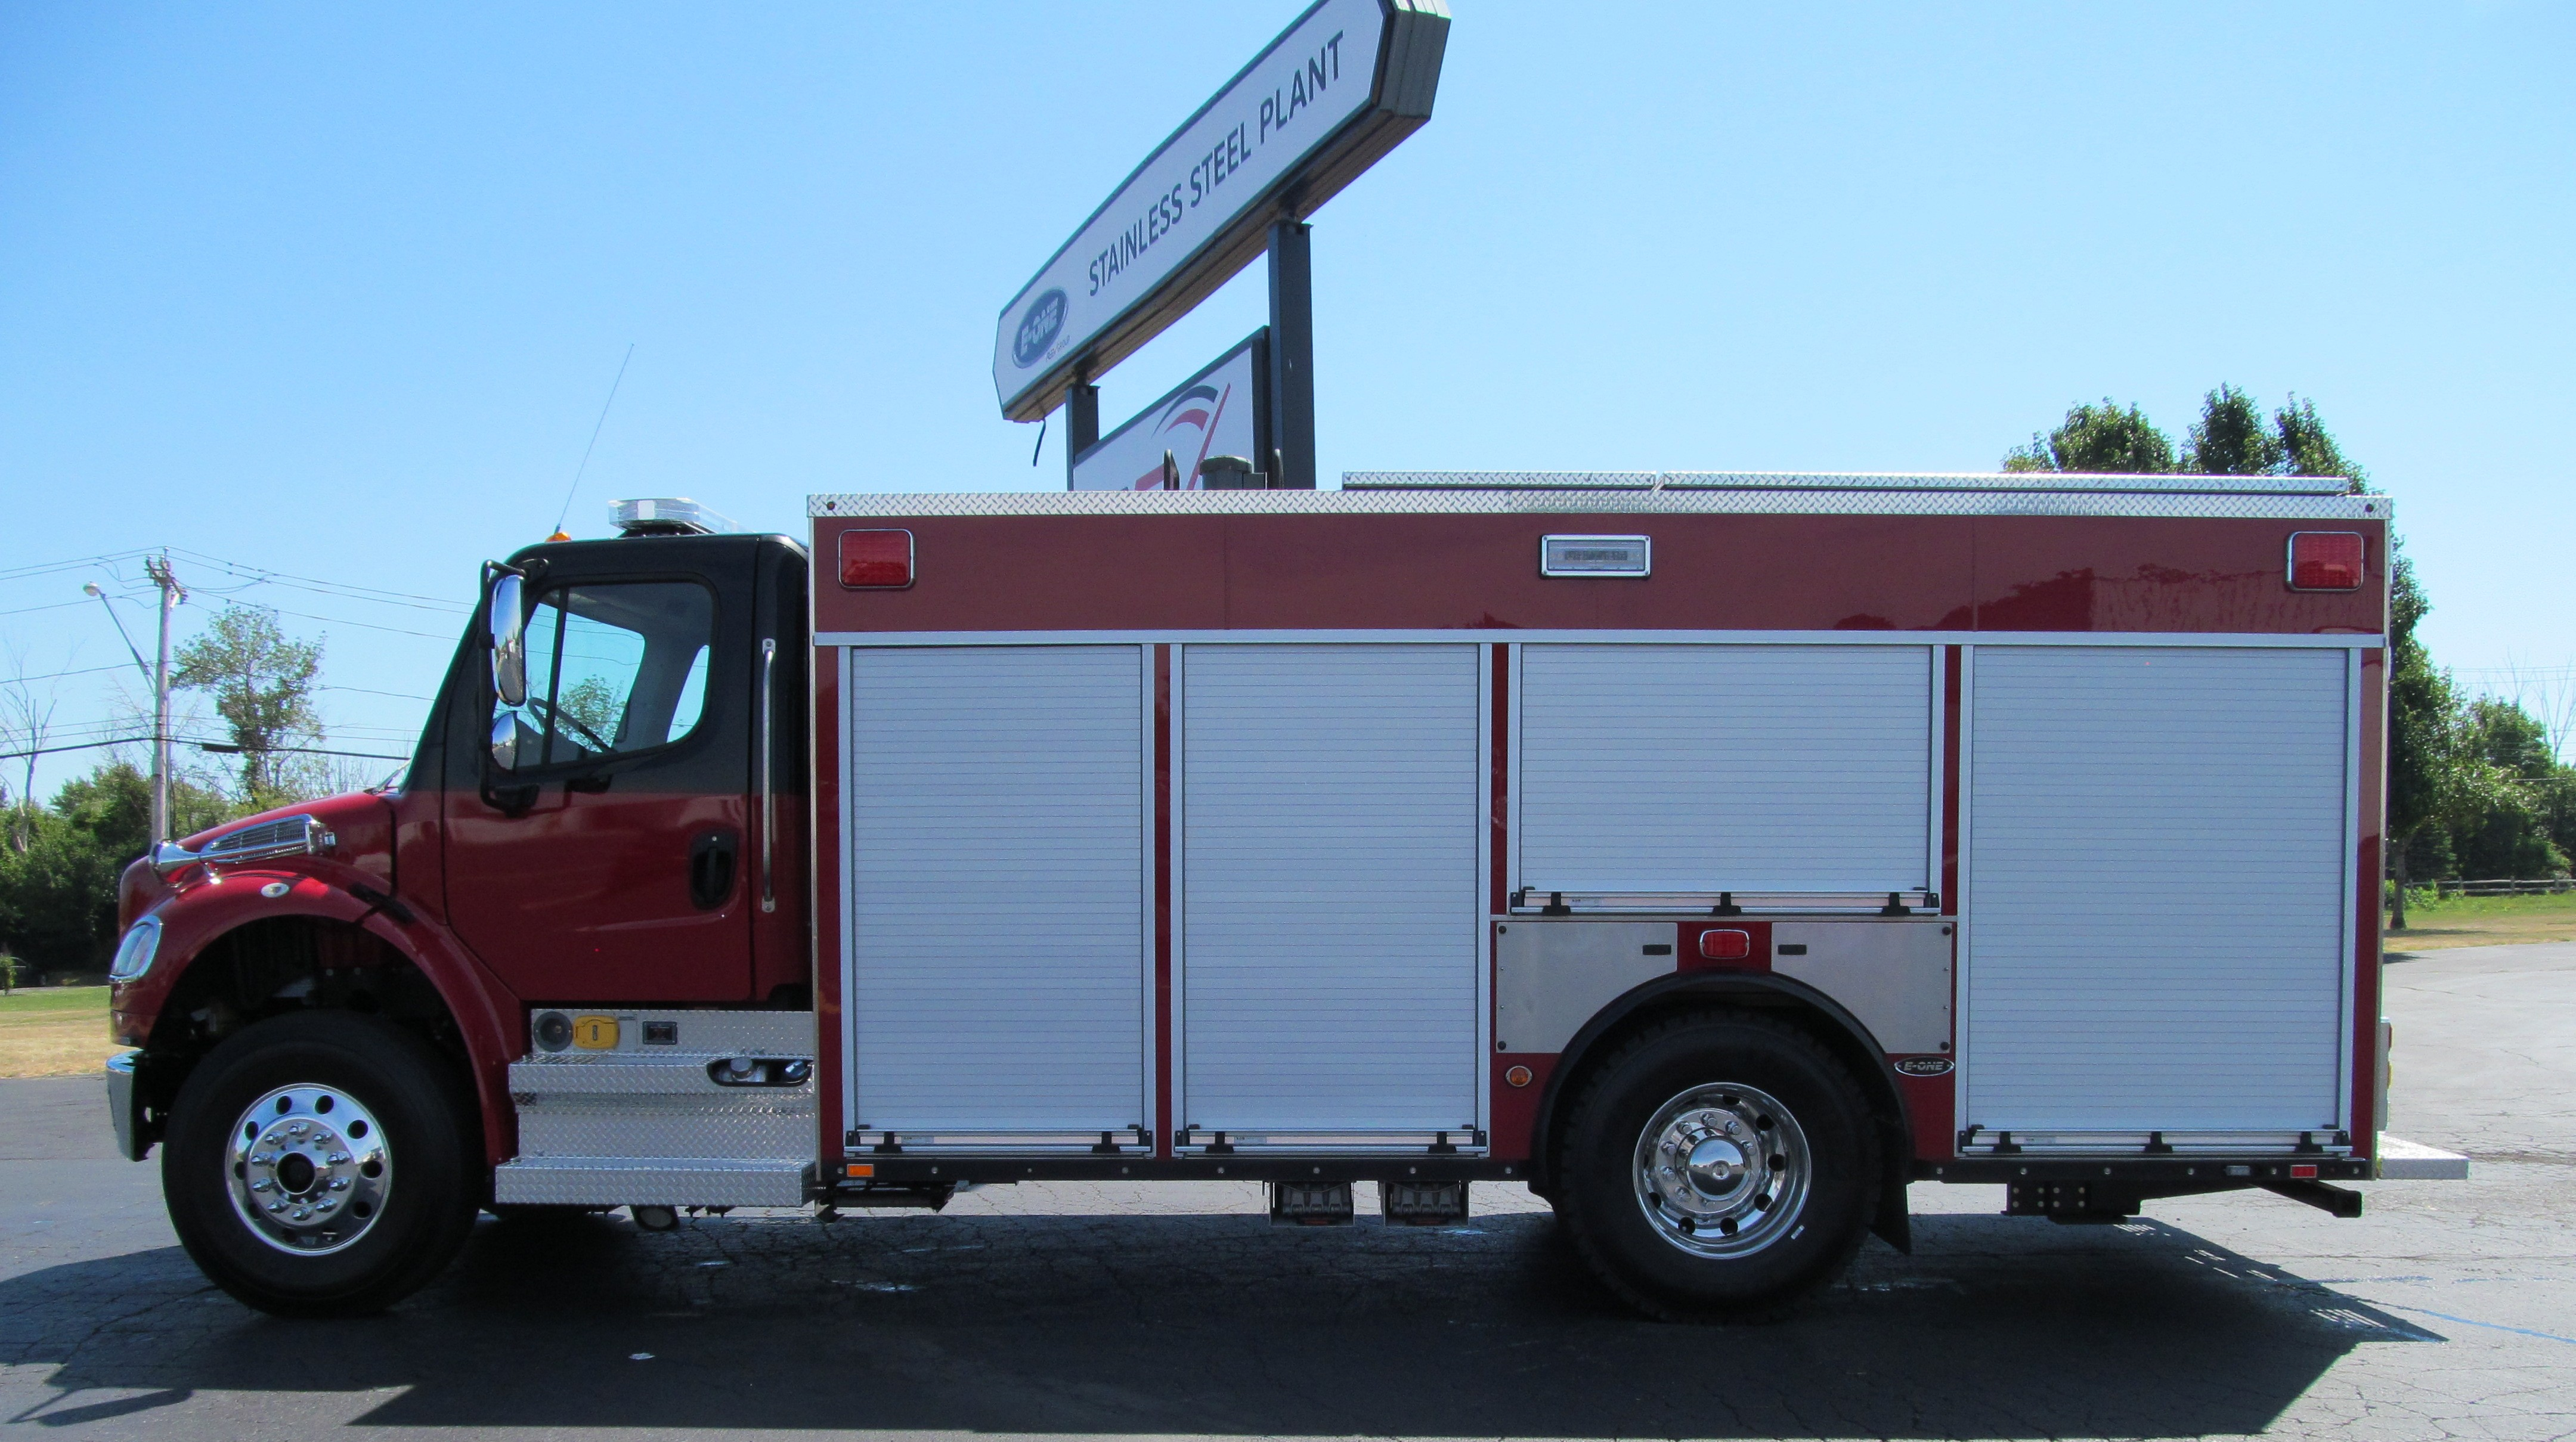 E-ONE Stainless Steel Rescue to City of Cortland